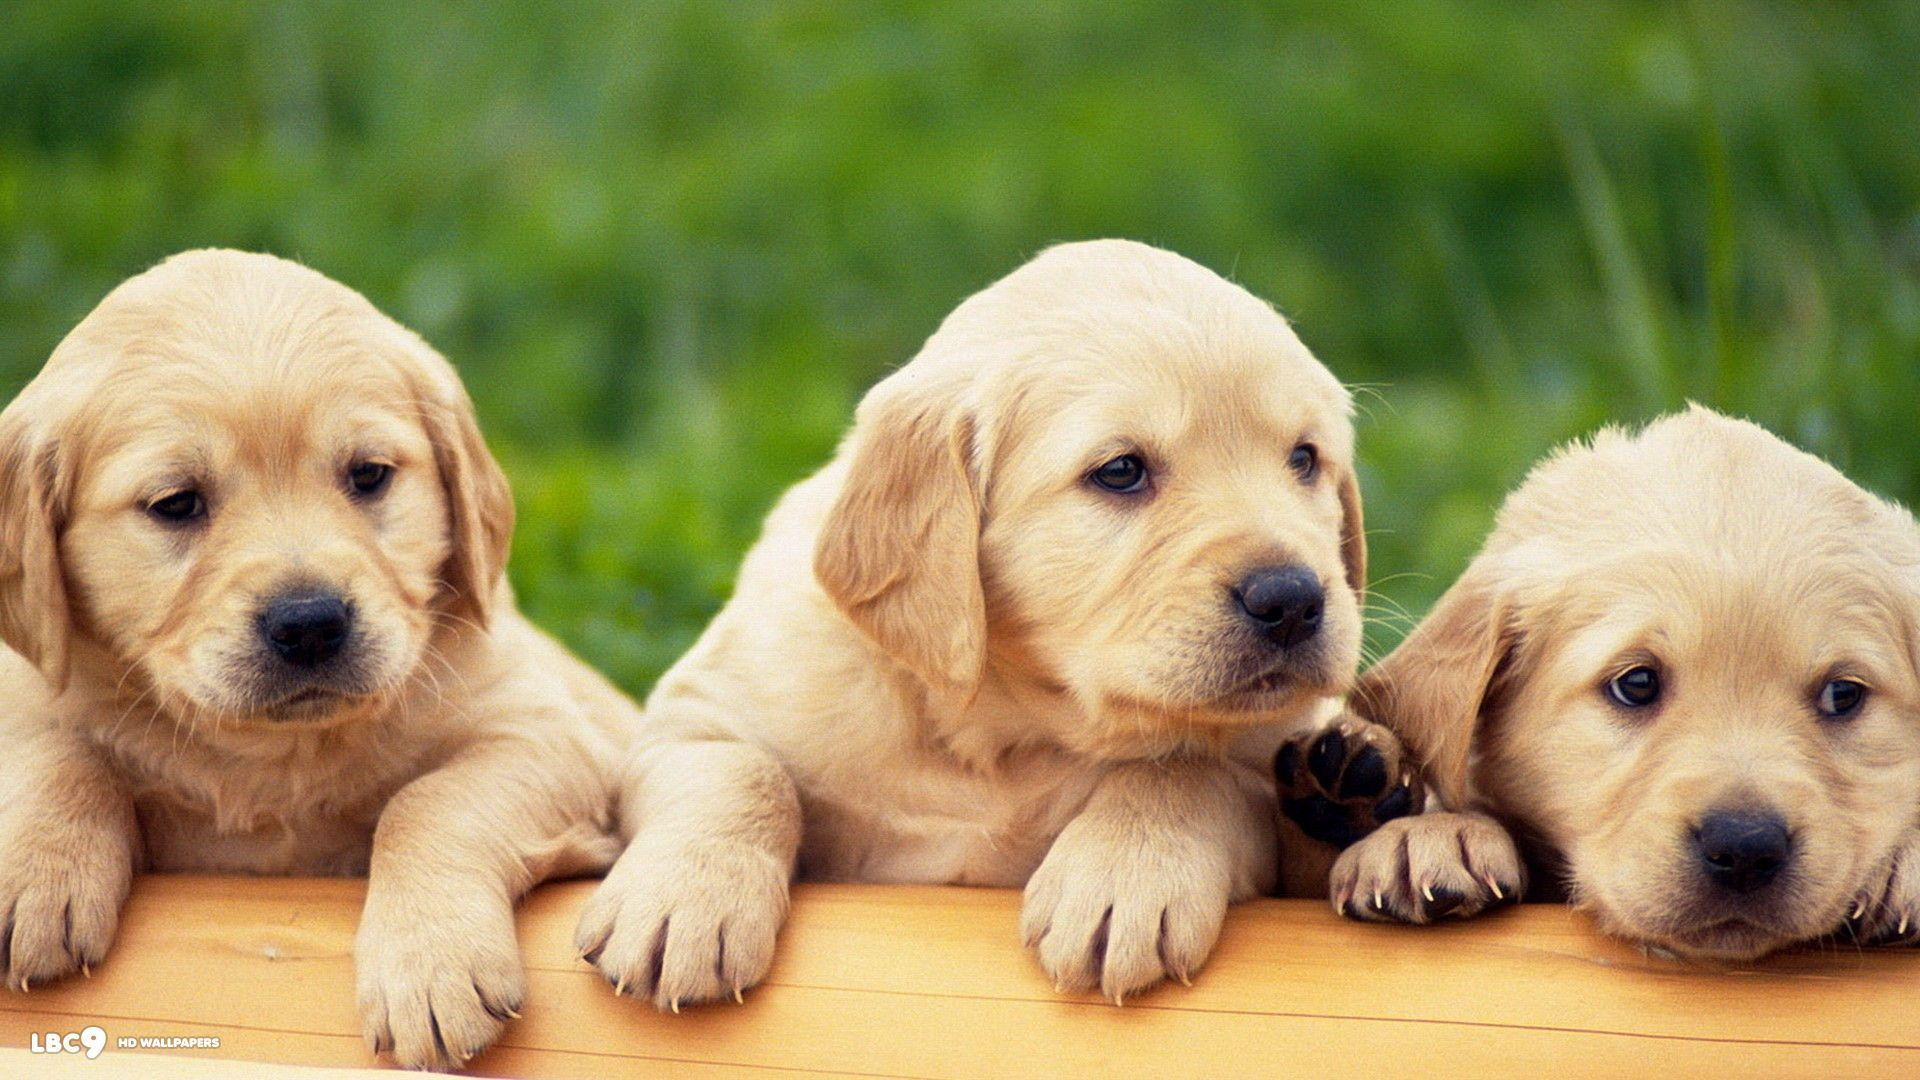 Lab Puppy Wallpaper